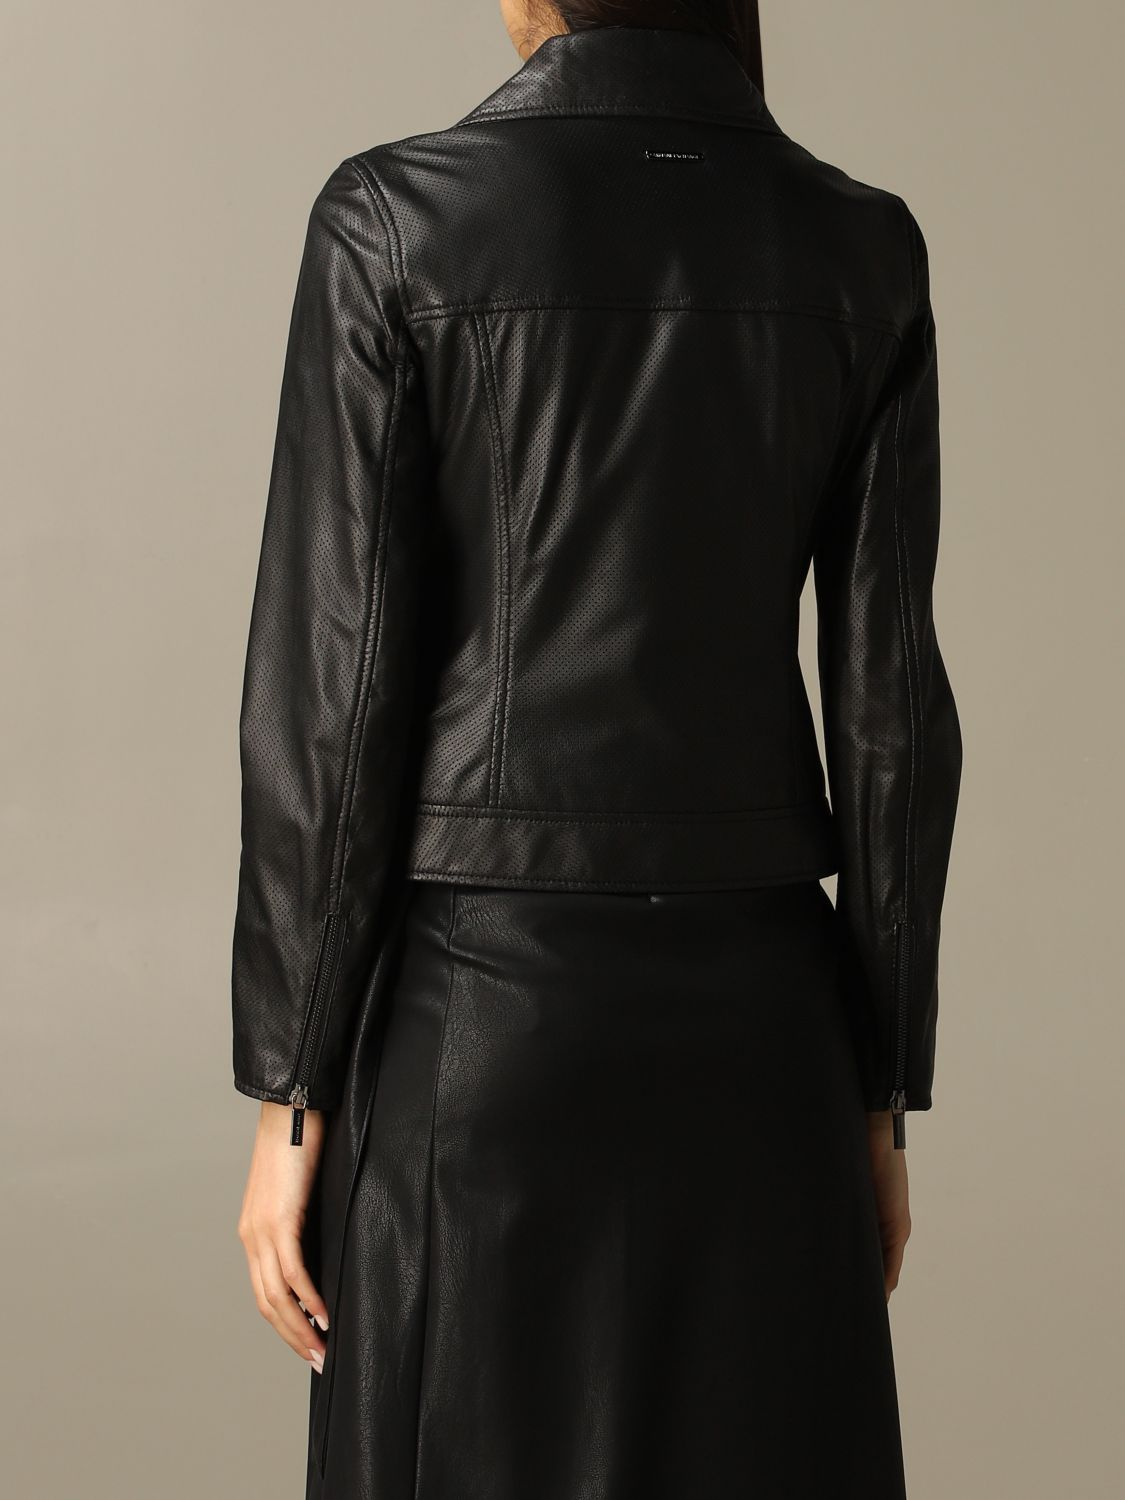 Jacket Armani Exchange: Jacket women Armani Exchange black 2